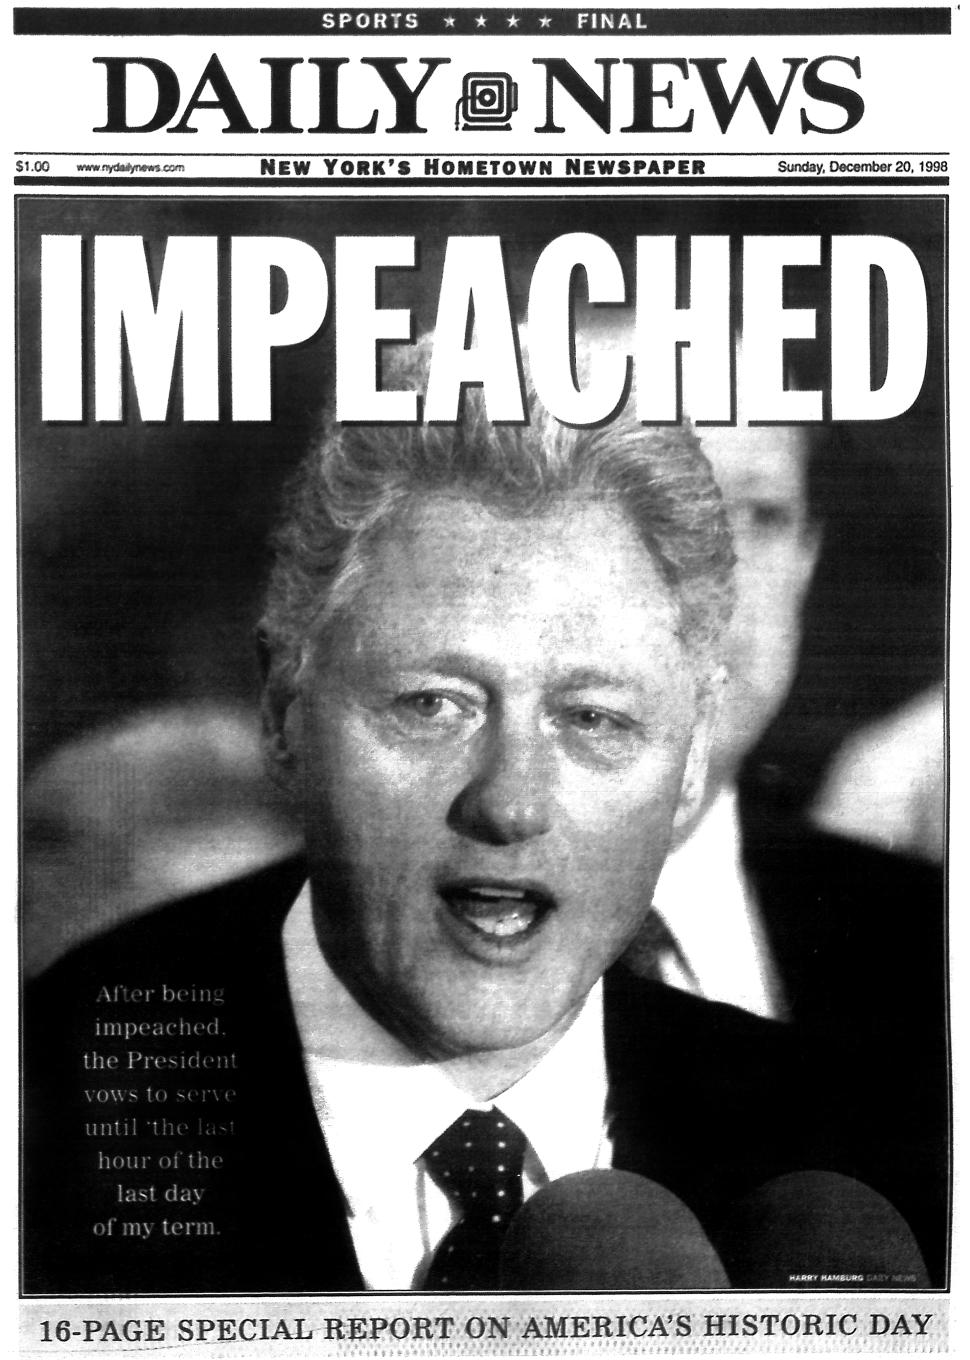 Today in History: Bill Clinton impeached, Titanic released ...